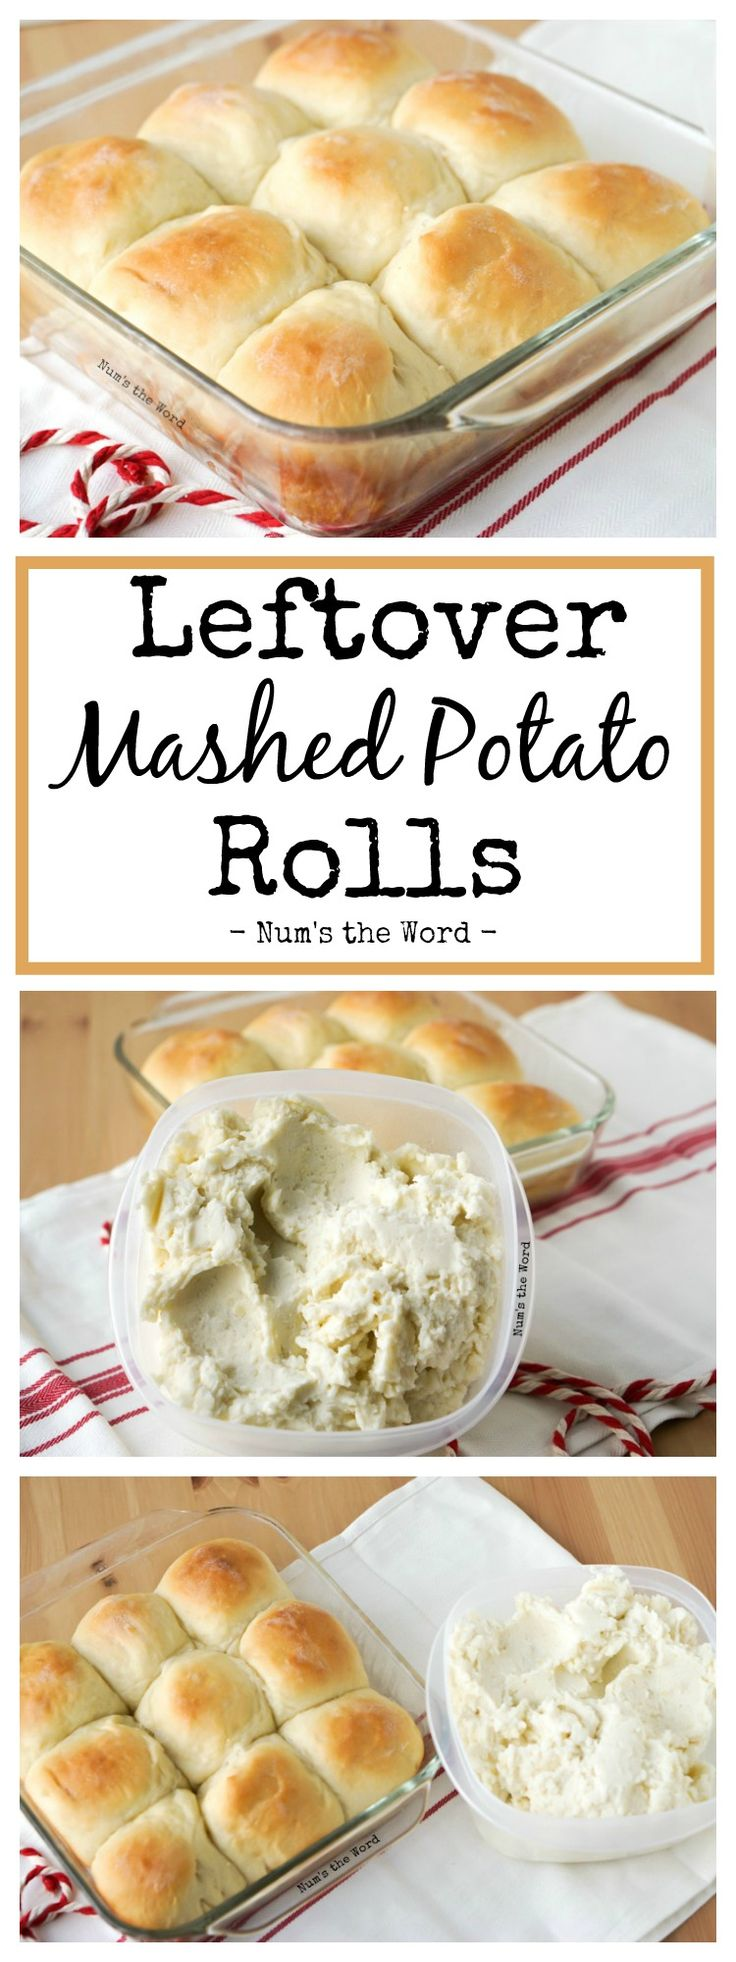 *VIDEO* Leftover Mashed Potato Rolls are a sweet and delicious way to use up any flavor of leftover mashed potatoes. Our #1 favorite way to use up leftovers! #sidedish #roll #yeastroll #yeastbread #potatorolls #potatobread #potato #leftovermashedpotatos #mashedpotatoes #rolls #thanksgiving #christmas #easter #recipe #numstheword